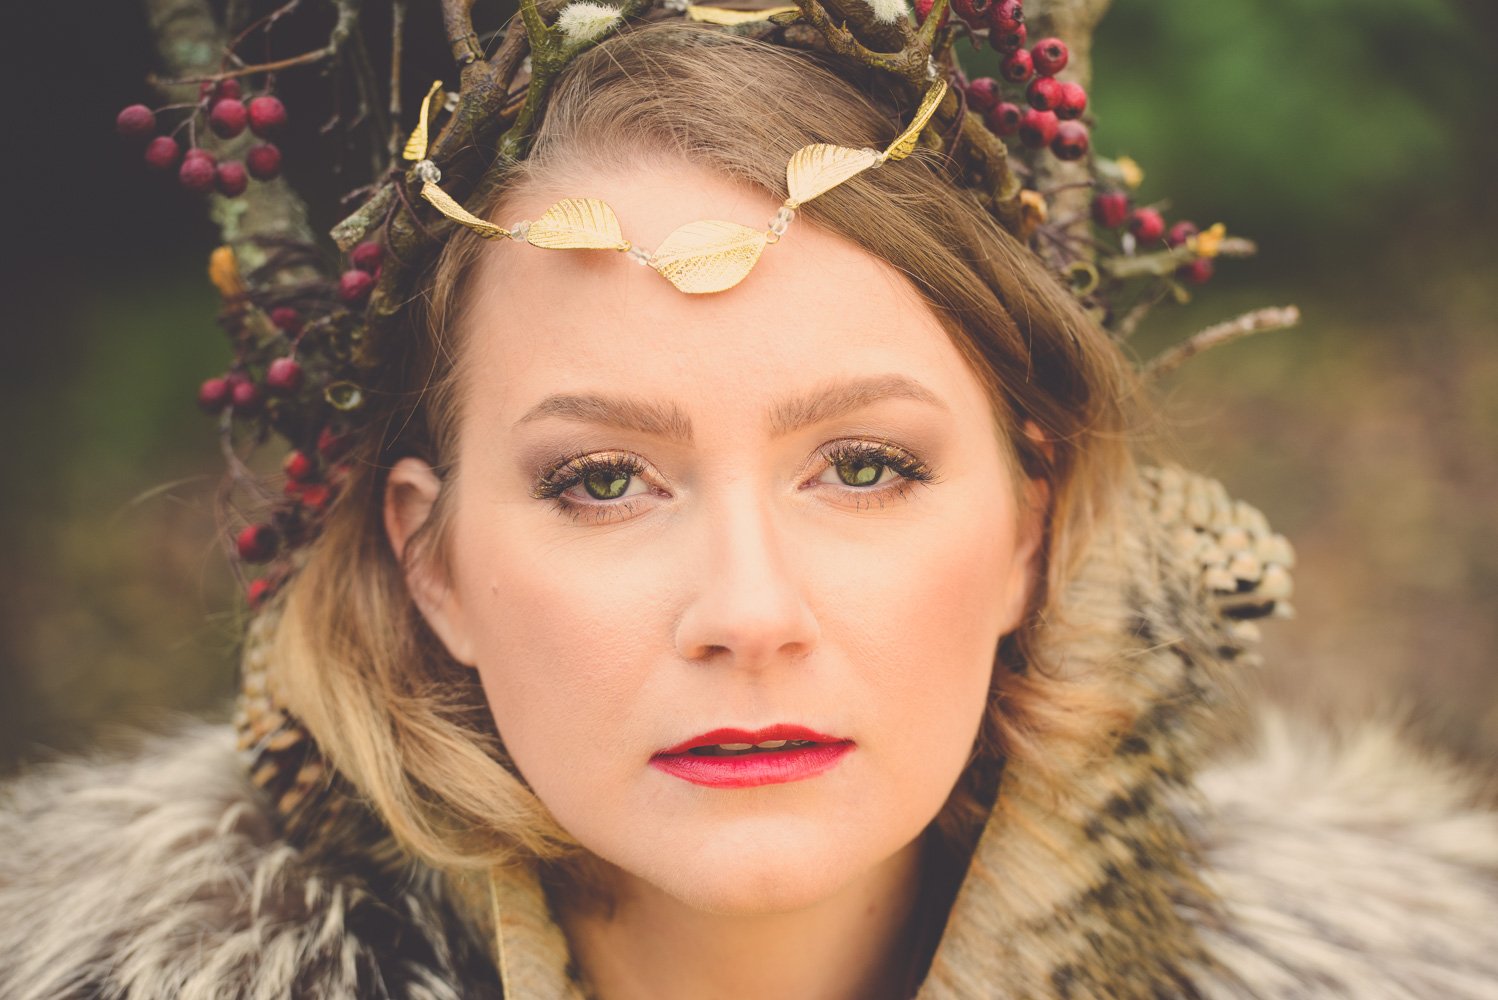 @findingfemme styles a woodland queen with russian volume lashes